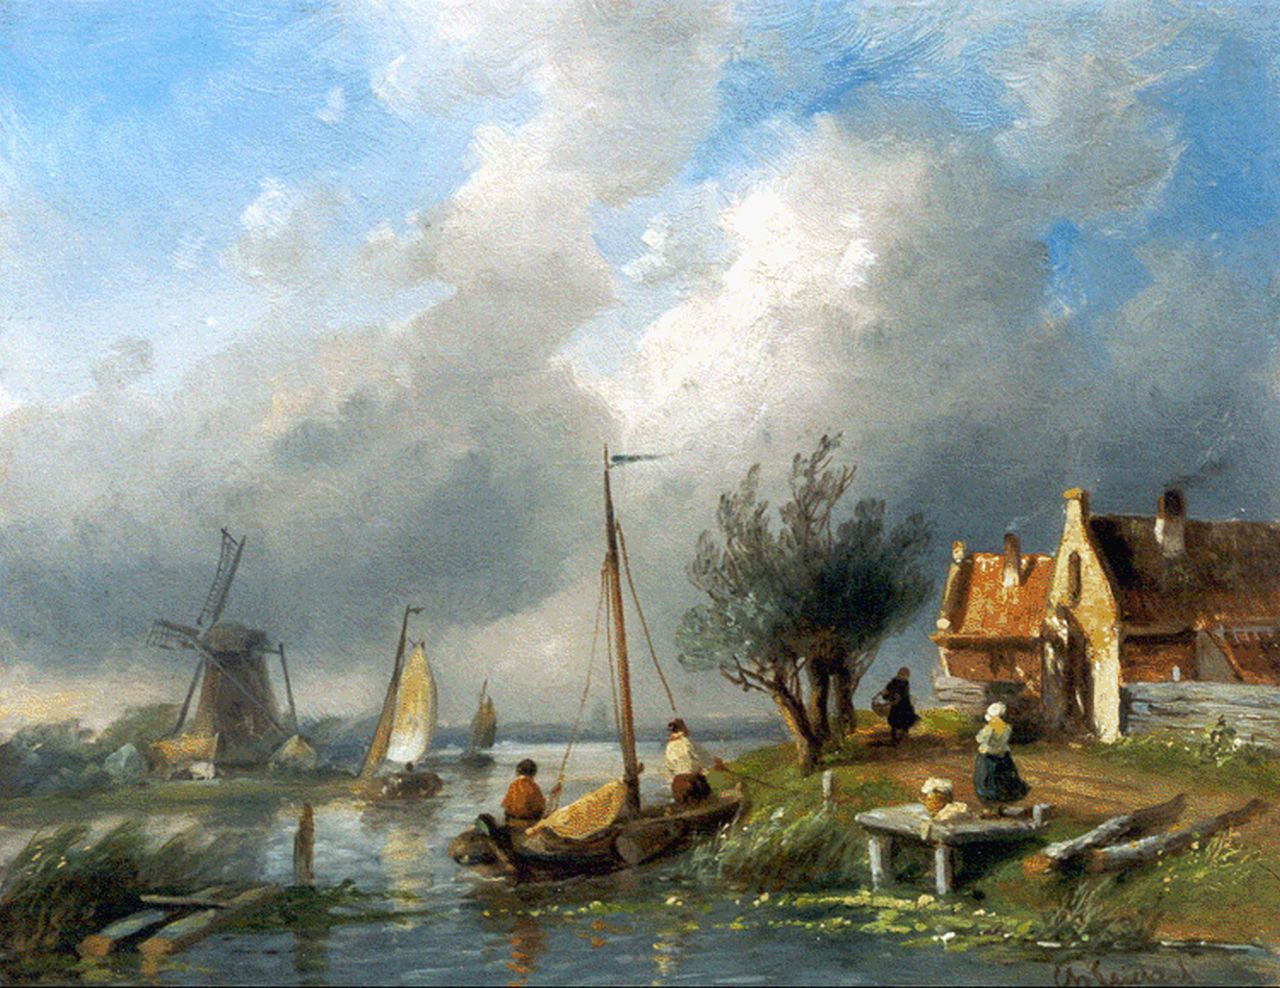 Leickert C.H.J.  | 'Charles' Henri Joseph Leickert, Sailing boats on a canal, oil on panel 21.7 x 27.1 cm, signed l.r.